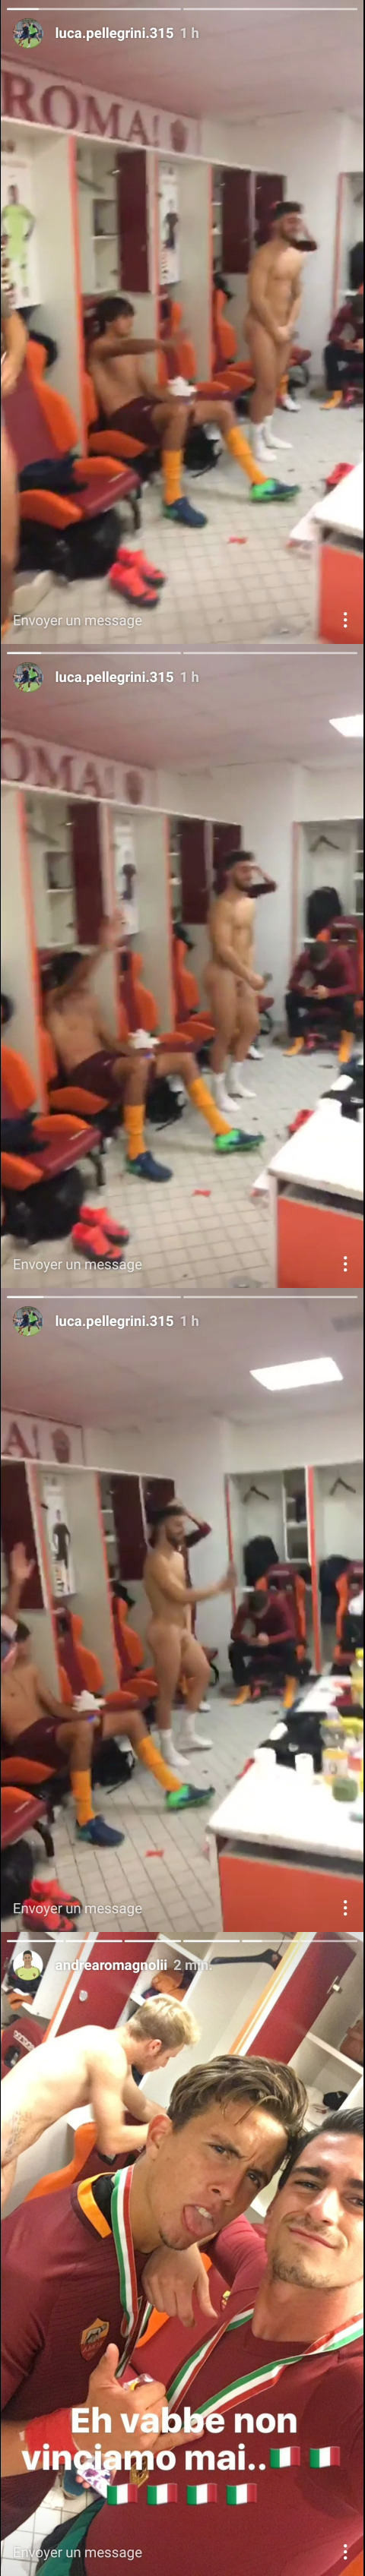 full-frontal-naked-italian-soccer-players-locker-room